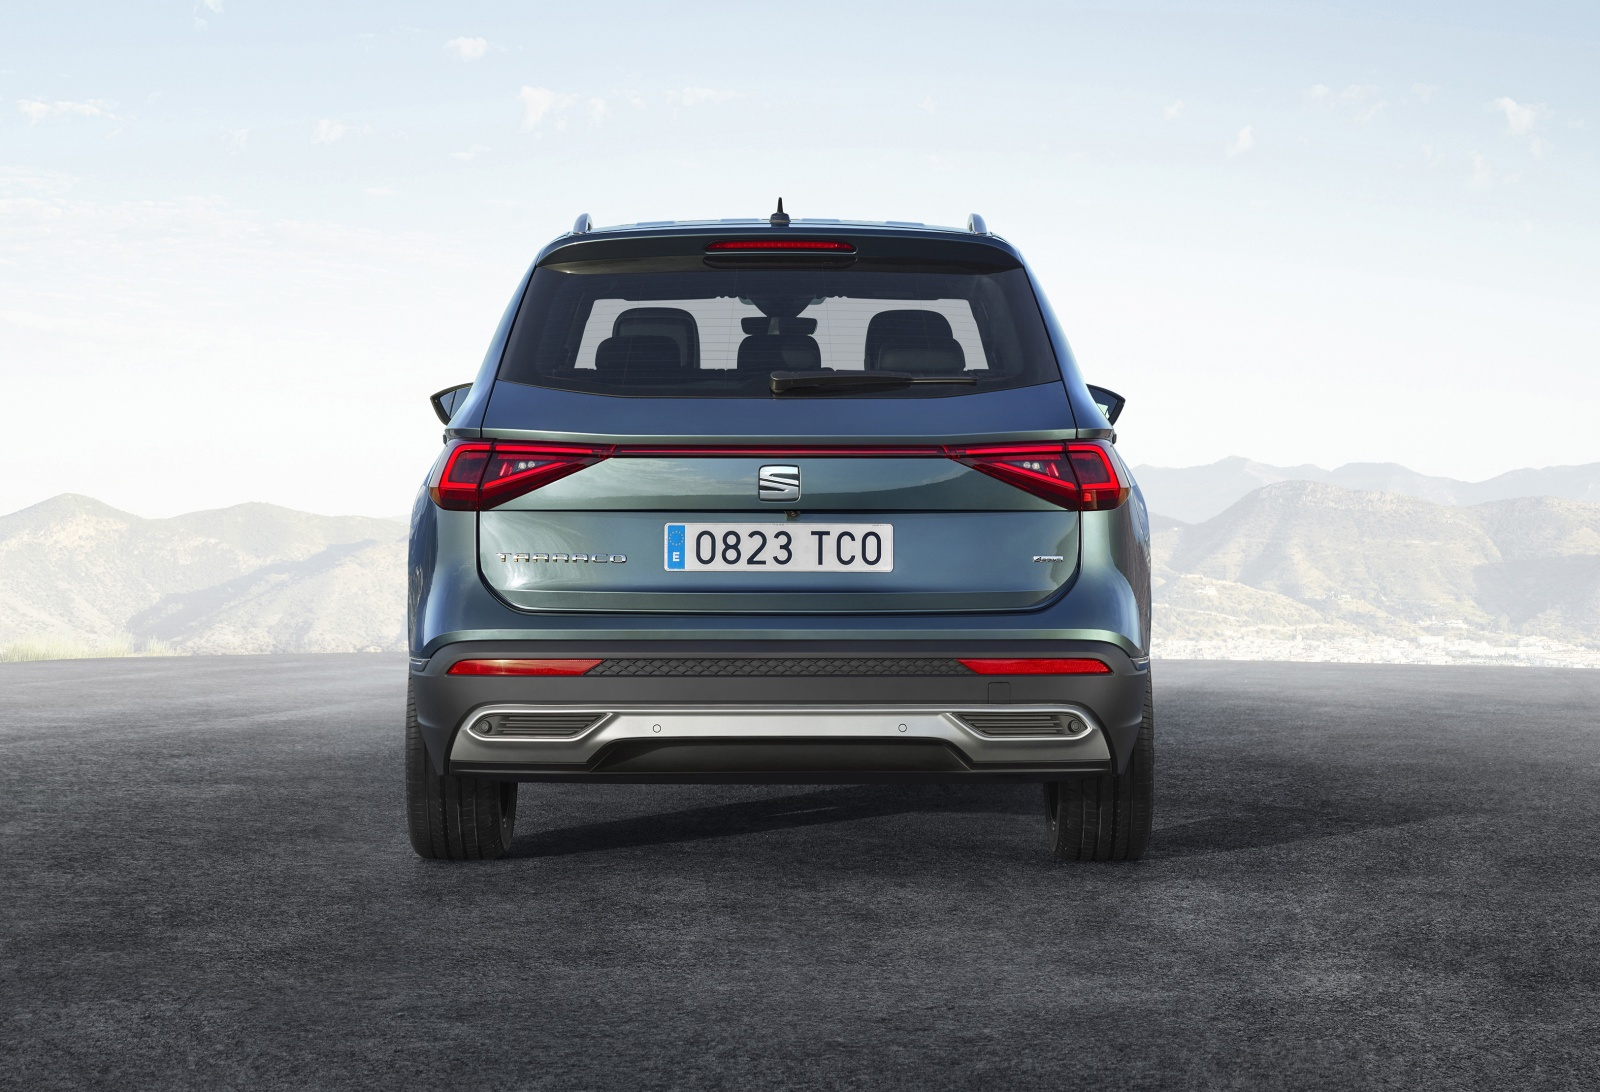 seat tarraco nieuw topmodel in suv formaat. Black Bedroom Furniture Sets. Home Design Ideas